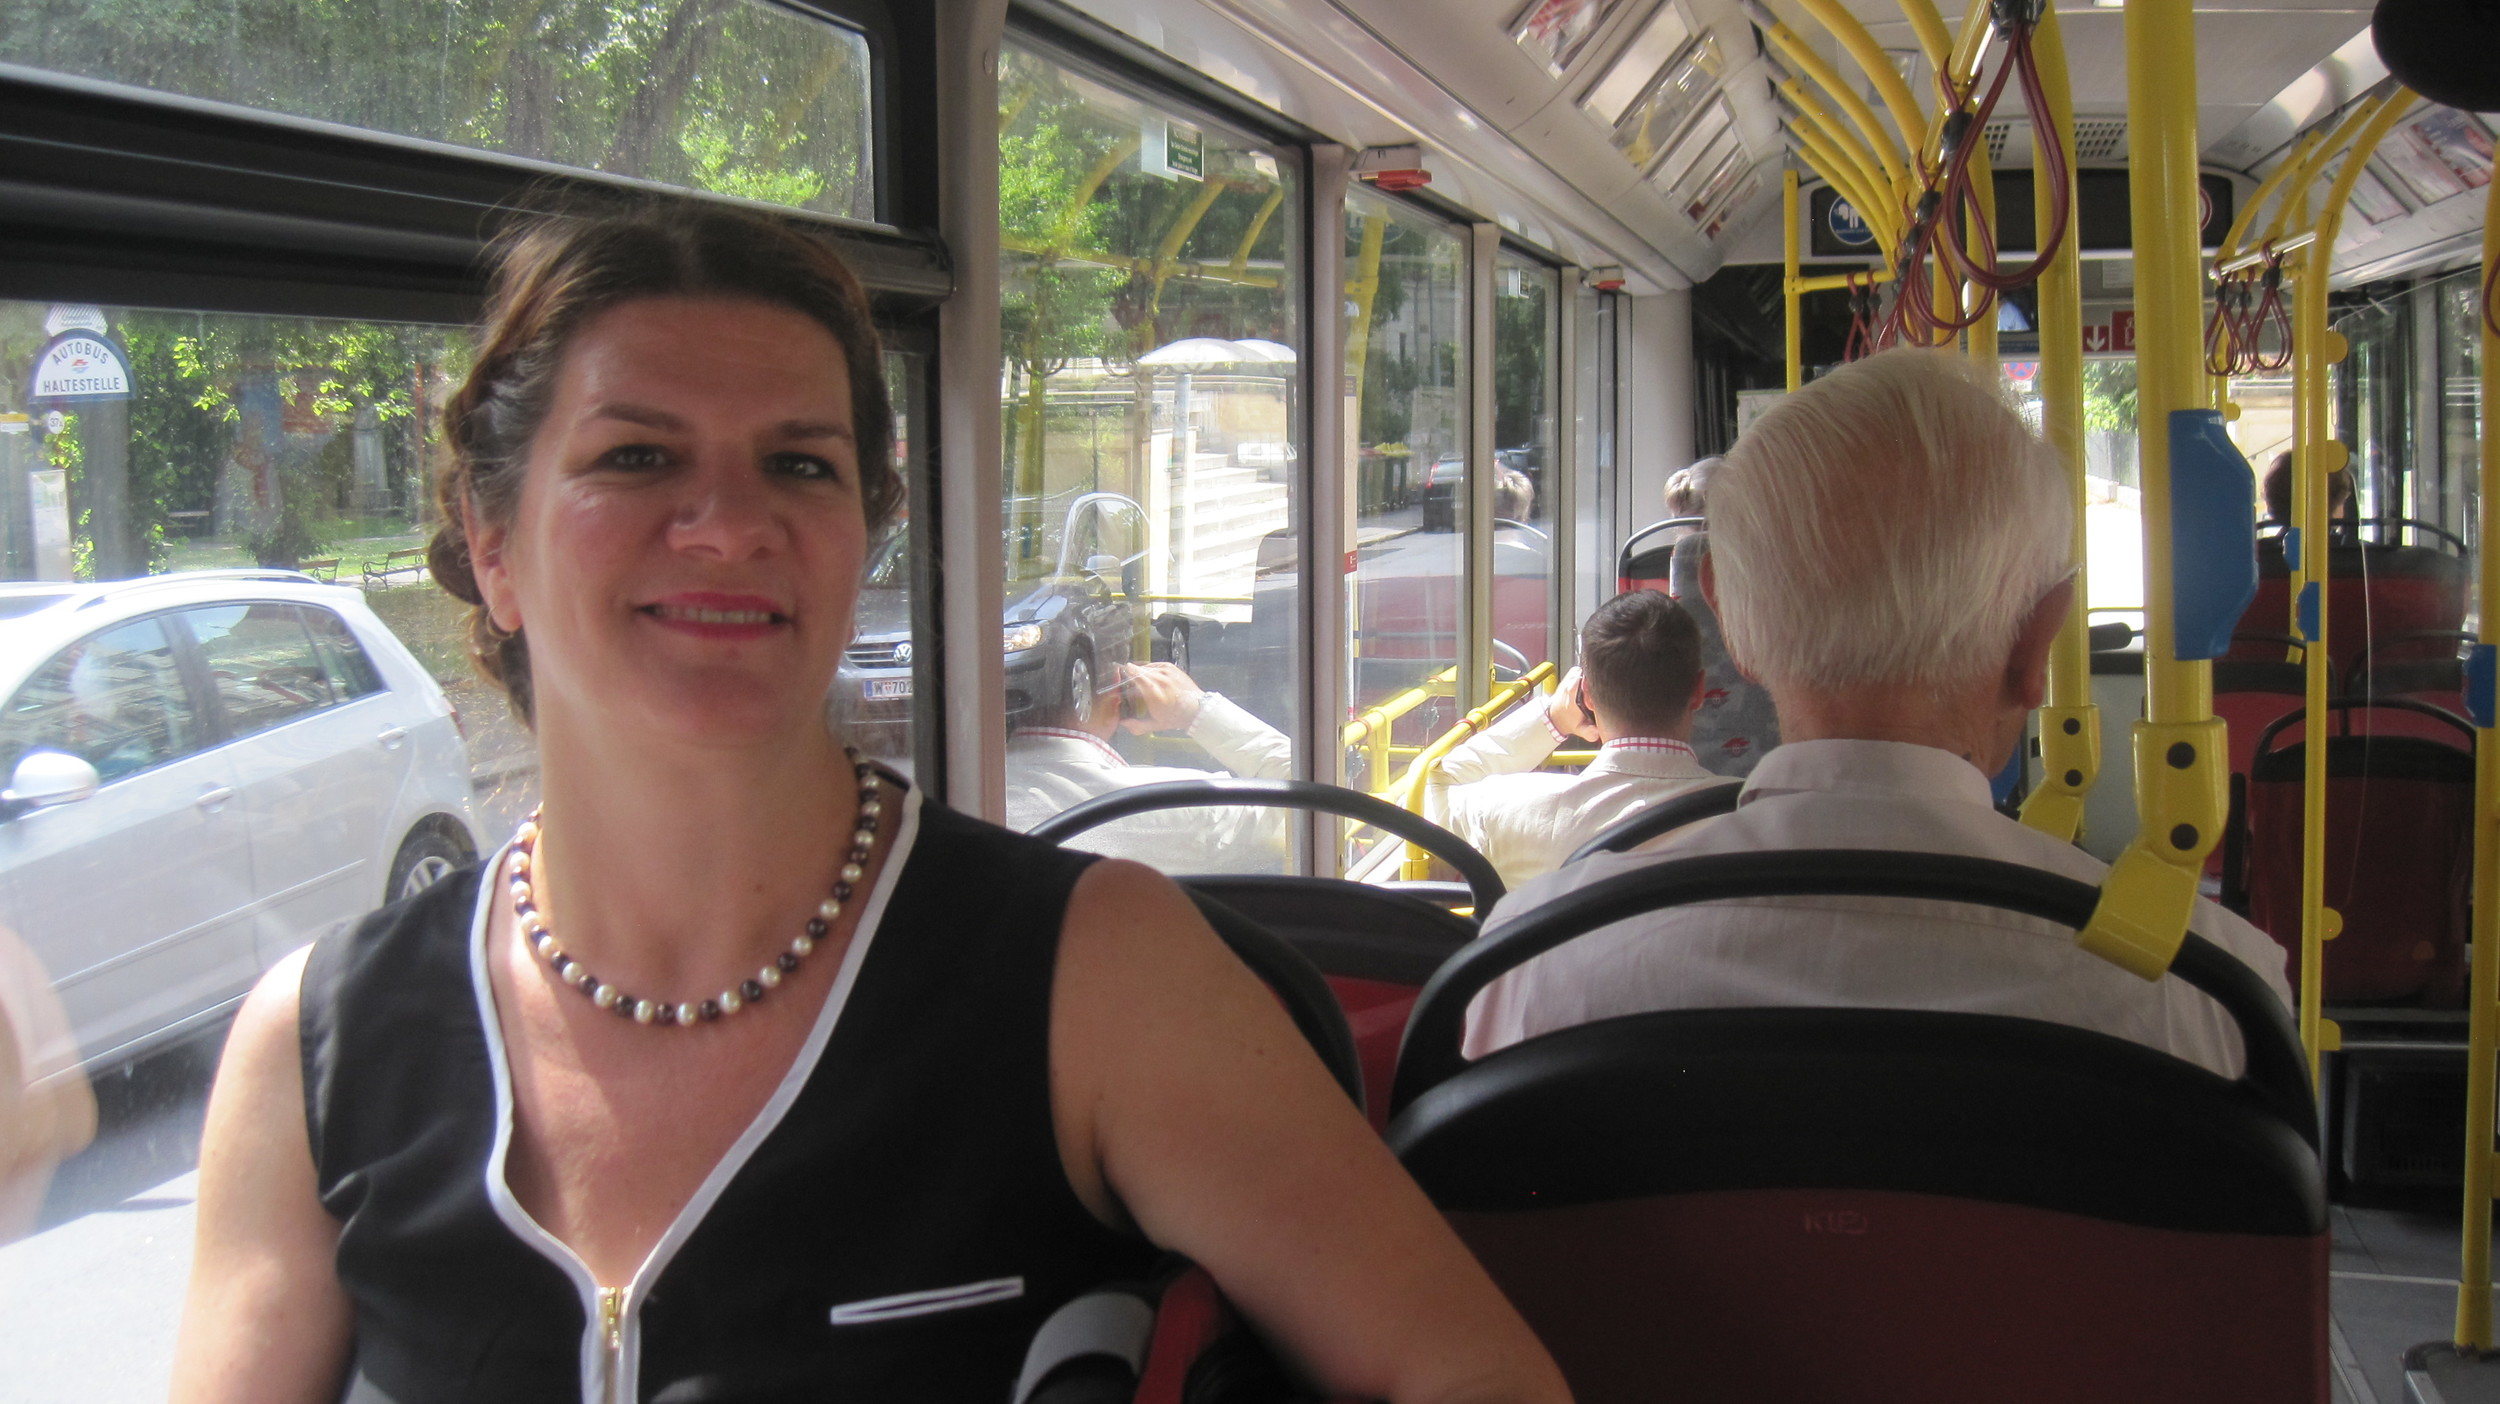 Enjoying a ride on Vienna's bus, the third part of a seamless rail to tram to bus route I took during my time interviewing transport professionals in the city during July 2014.